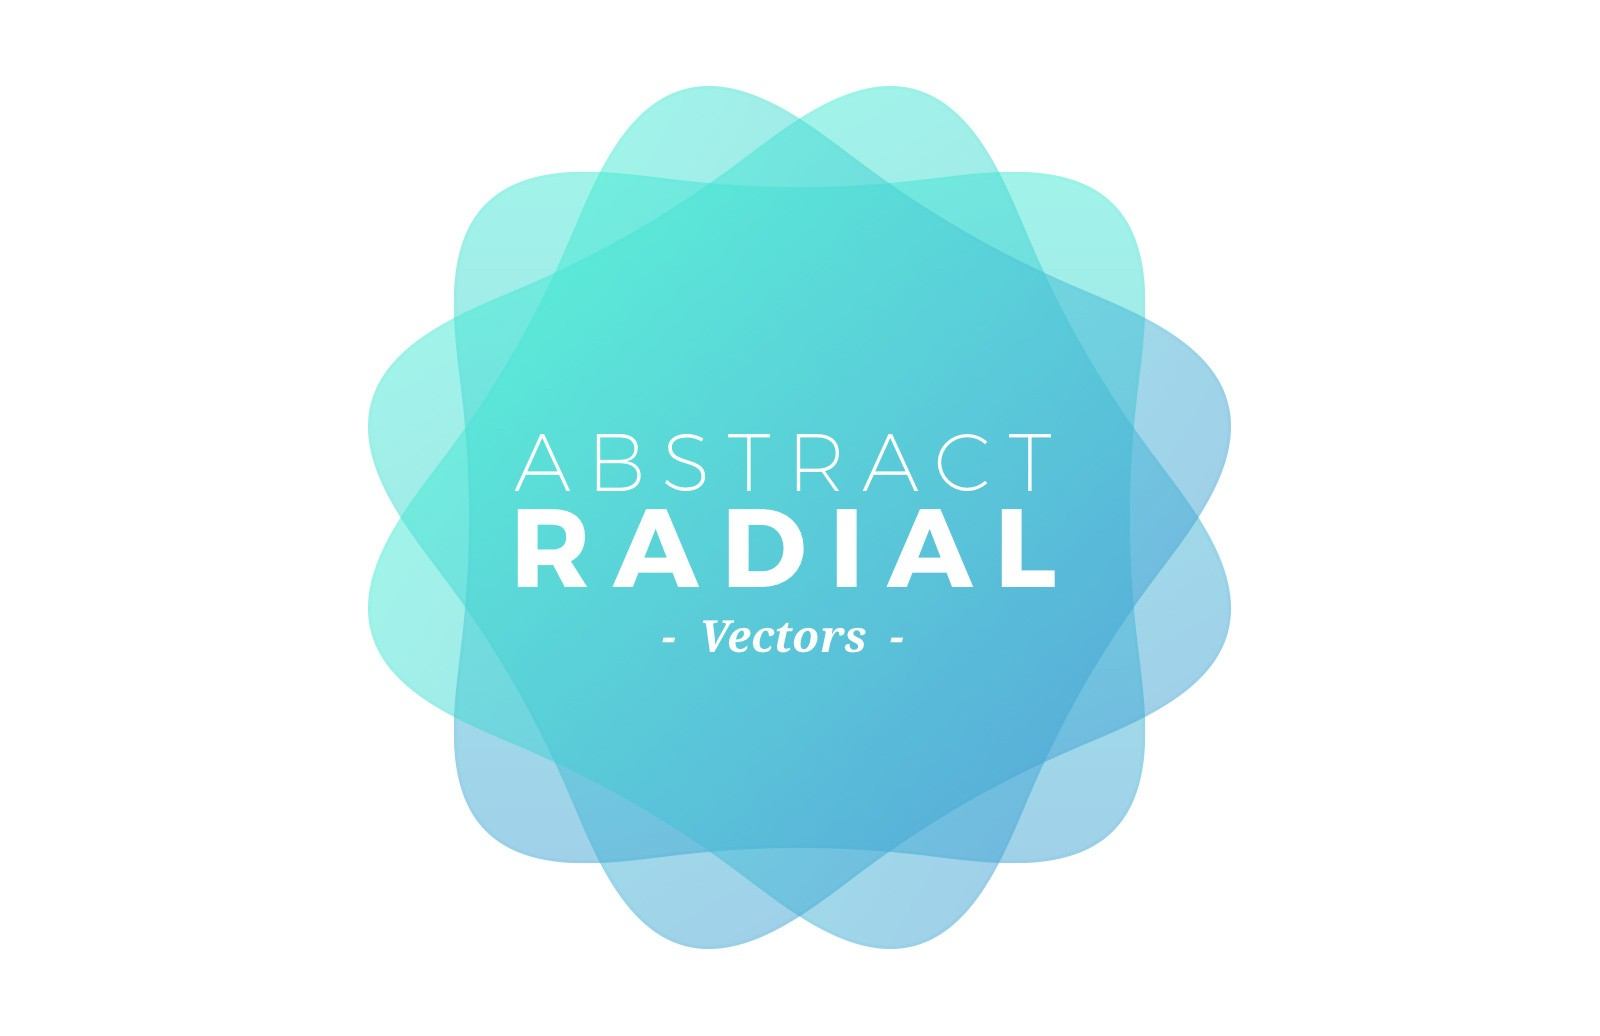 Abstract Radial Vectors Preview 1